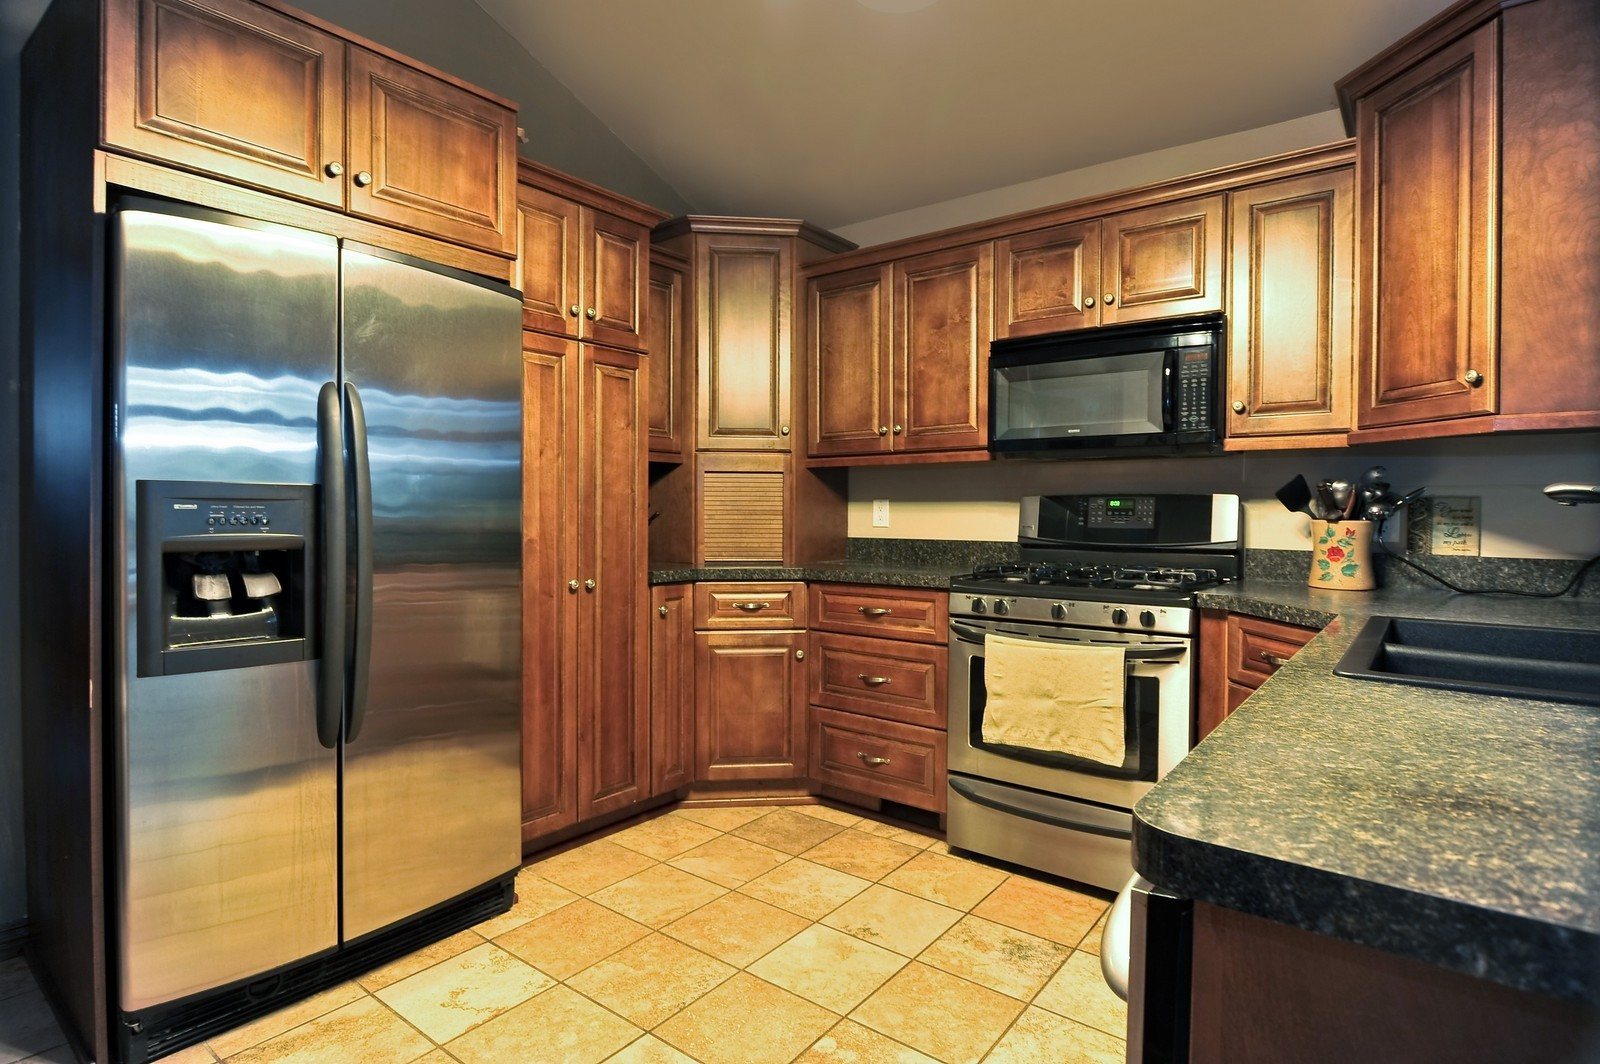 Real Estate Photography - 23250 Florian Dr, Wilmington, IL, 60481 - Kitchen opens to the Living Room (main residence)